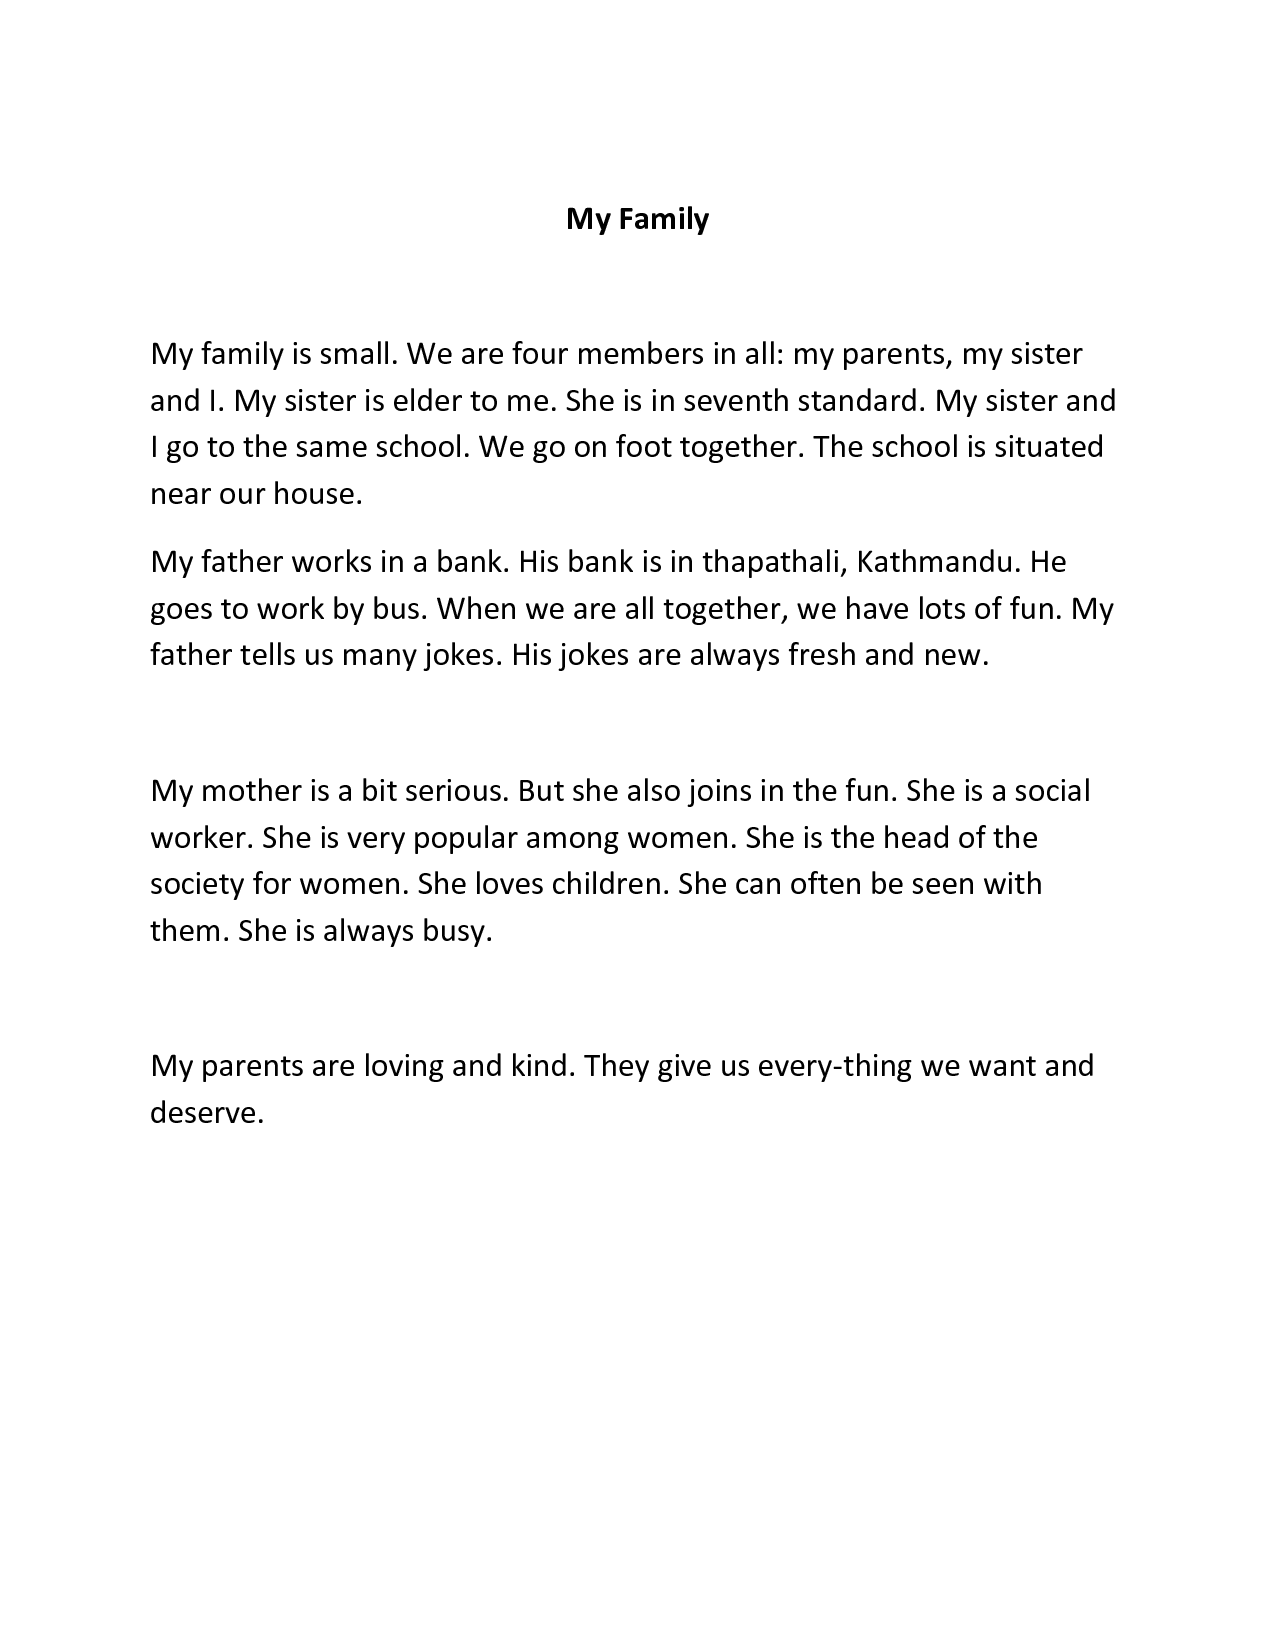 009 Family Essays Short Essay English My Example For Kindergarten On Class In German I Love About Is Always Supportive Hindi French Pet Student Impressive Examples Primary School Narrative To Read Small Spanish Full